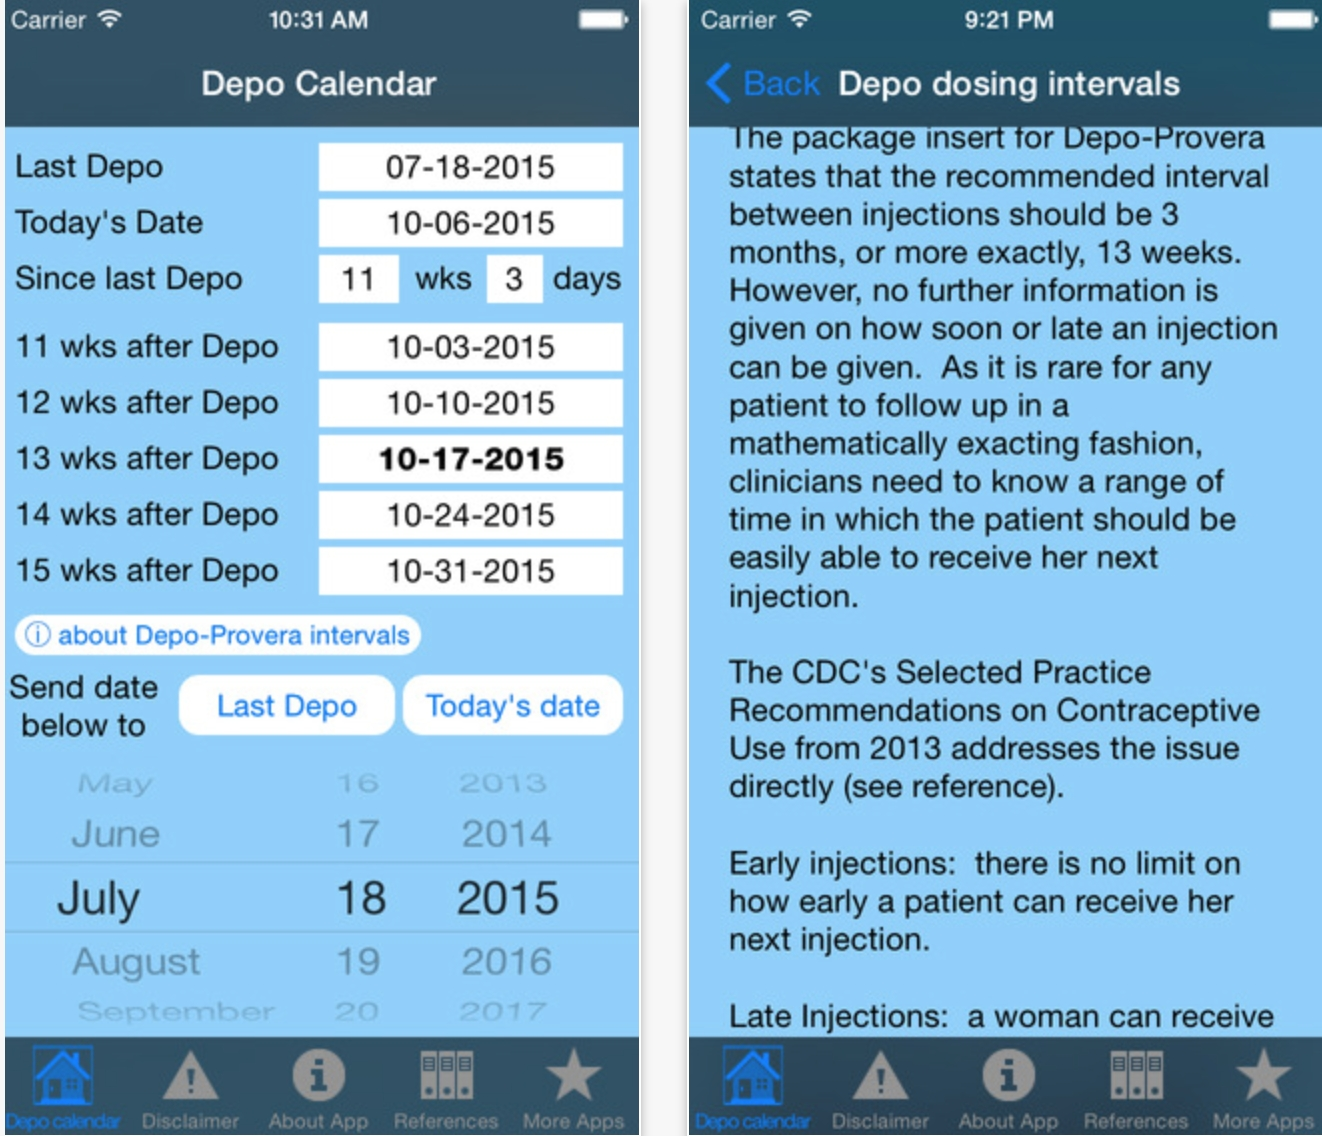 Depo Calendar App Could Significantly Improve Contraception  Calculate Depo Injection Dates